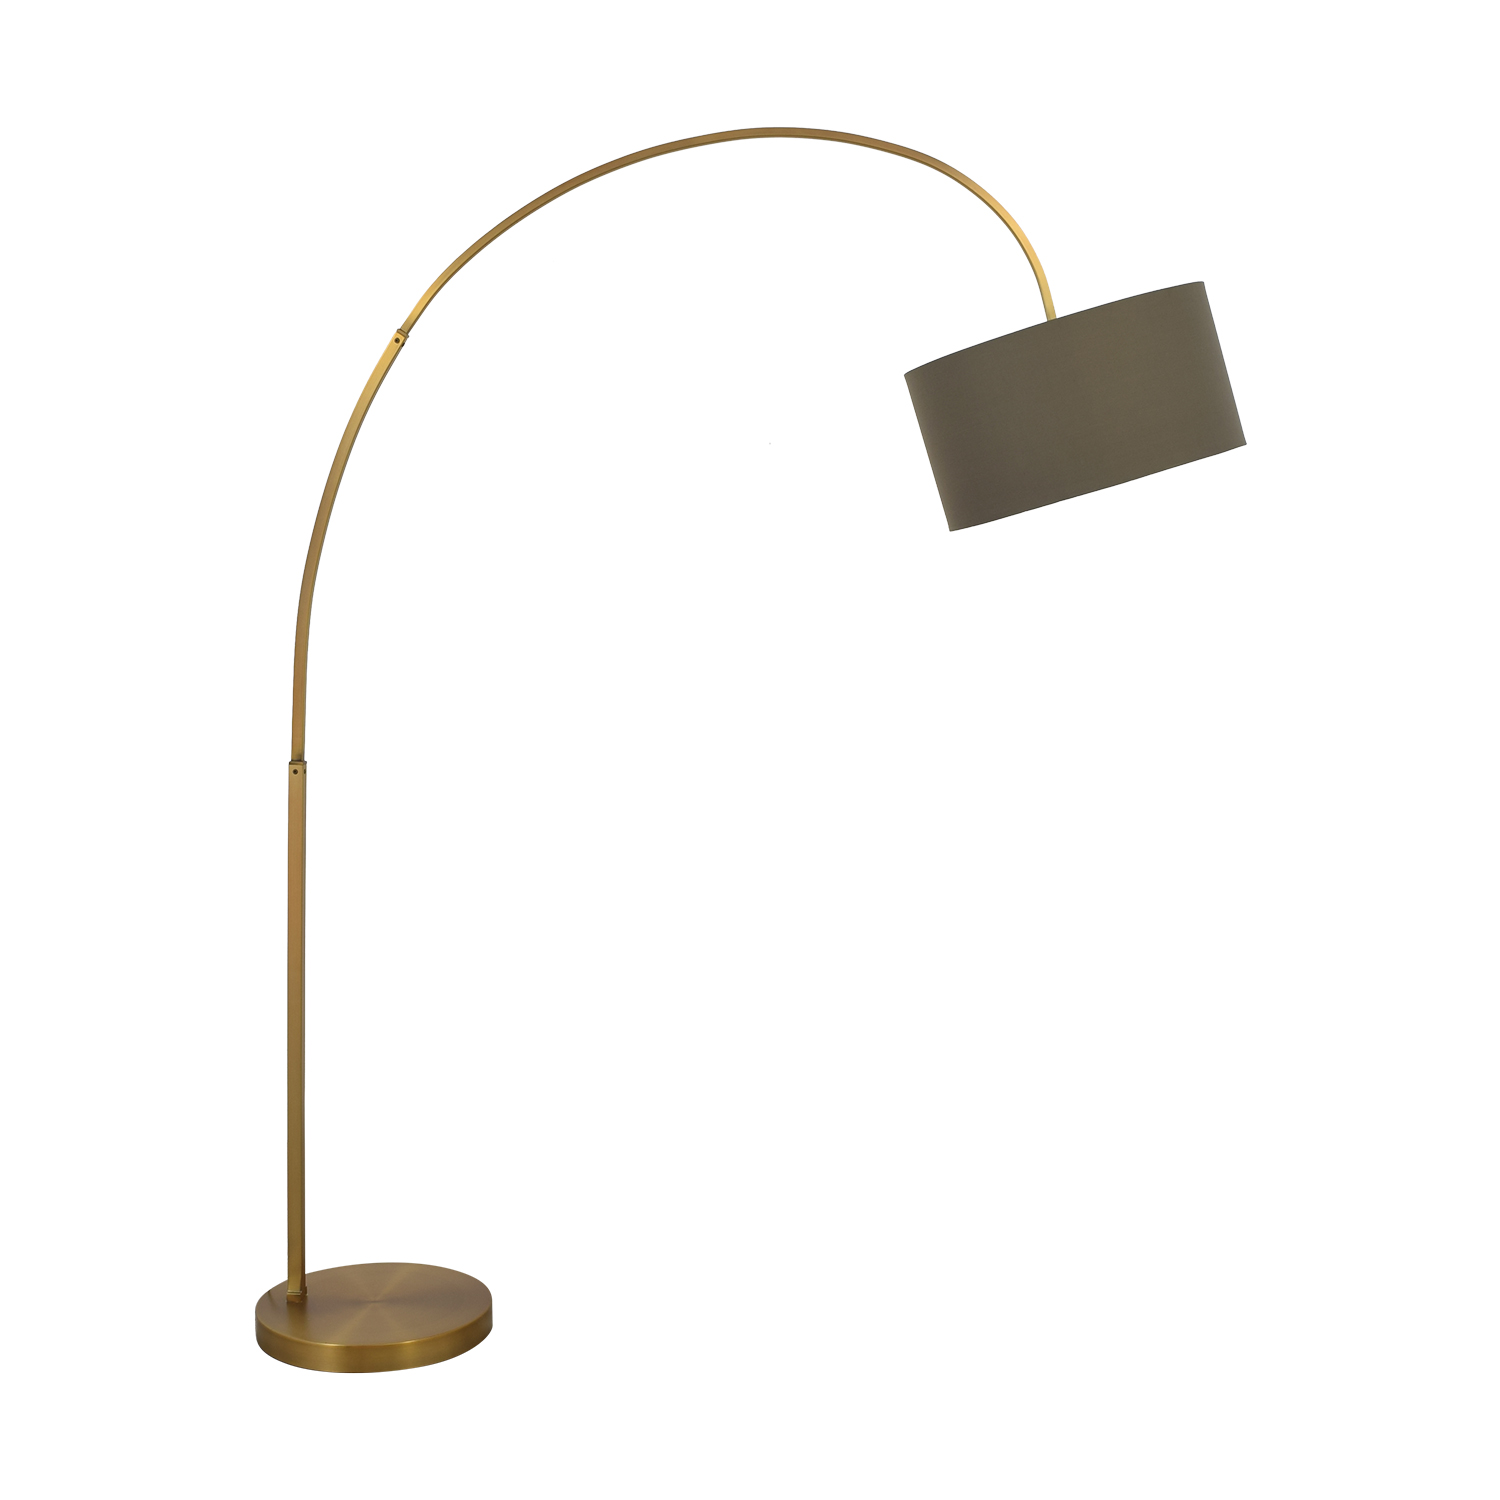 West Elm West Elm Overarching Lamp second hand